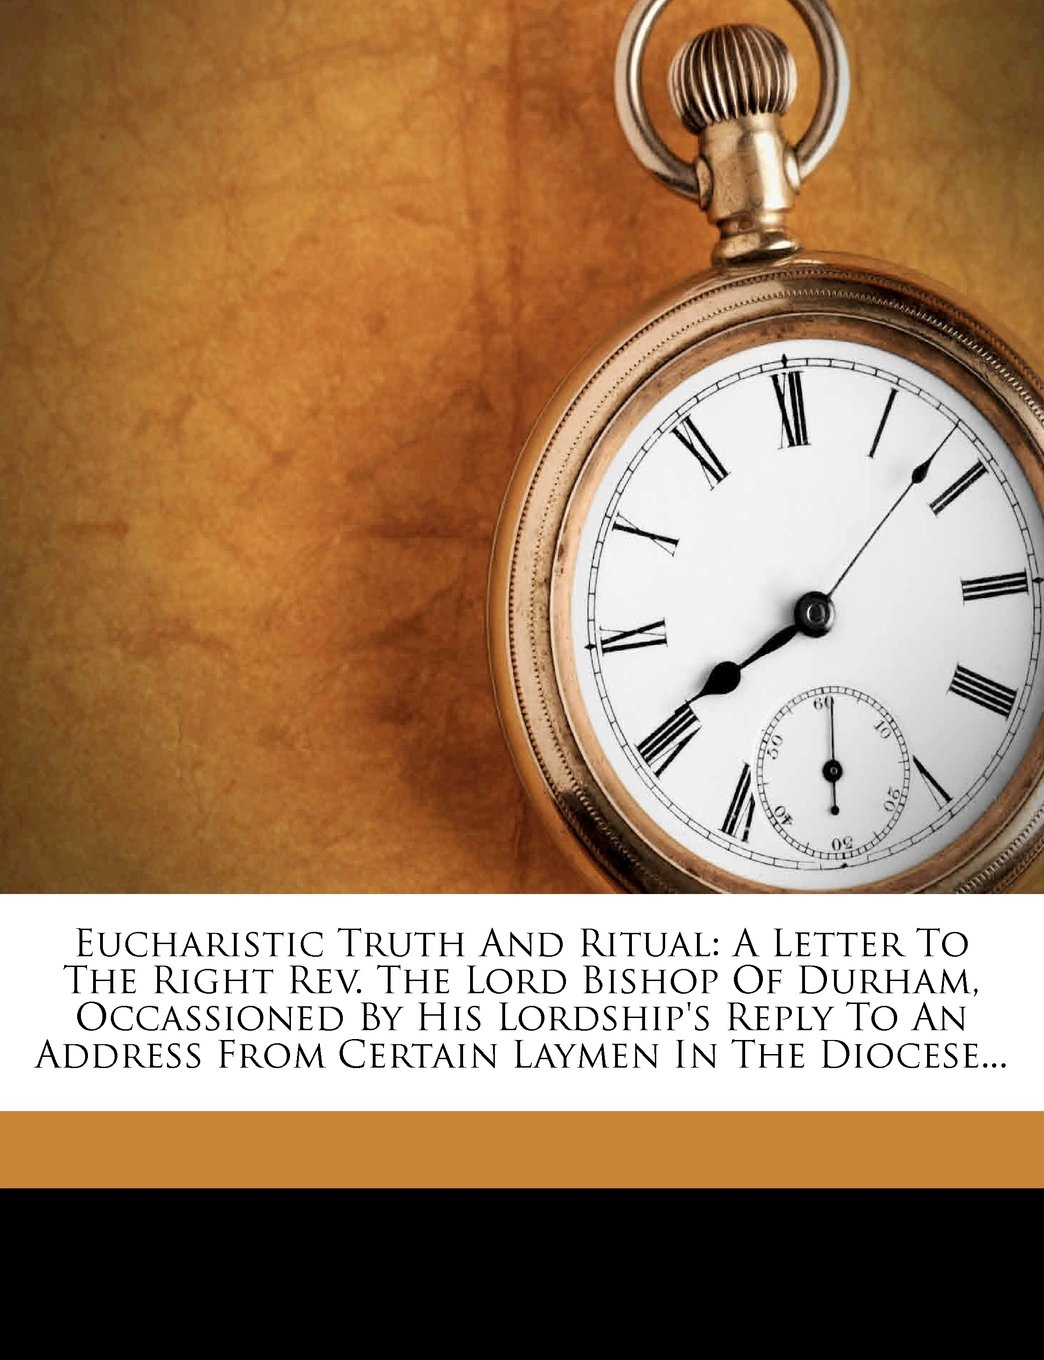 Download Eucharistic Truth And Ritual: A Letter To The Right Rev. The Lord Bishop Of Durham, Occassioned By His Lordship's Reply To An Address From Certain Laymen In The Diocese... PDF